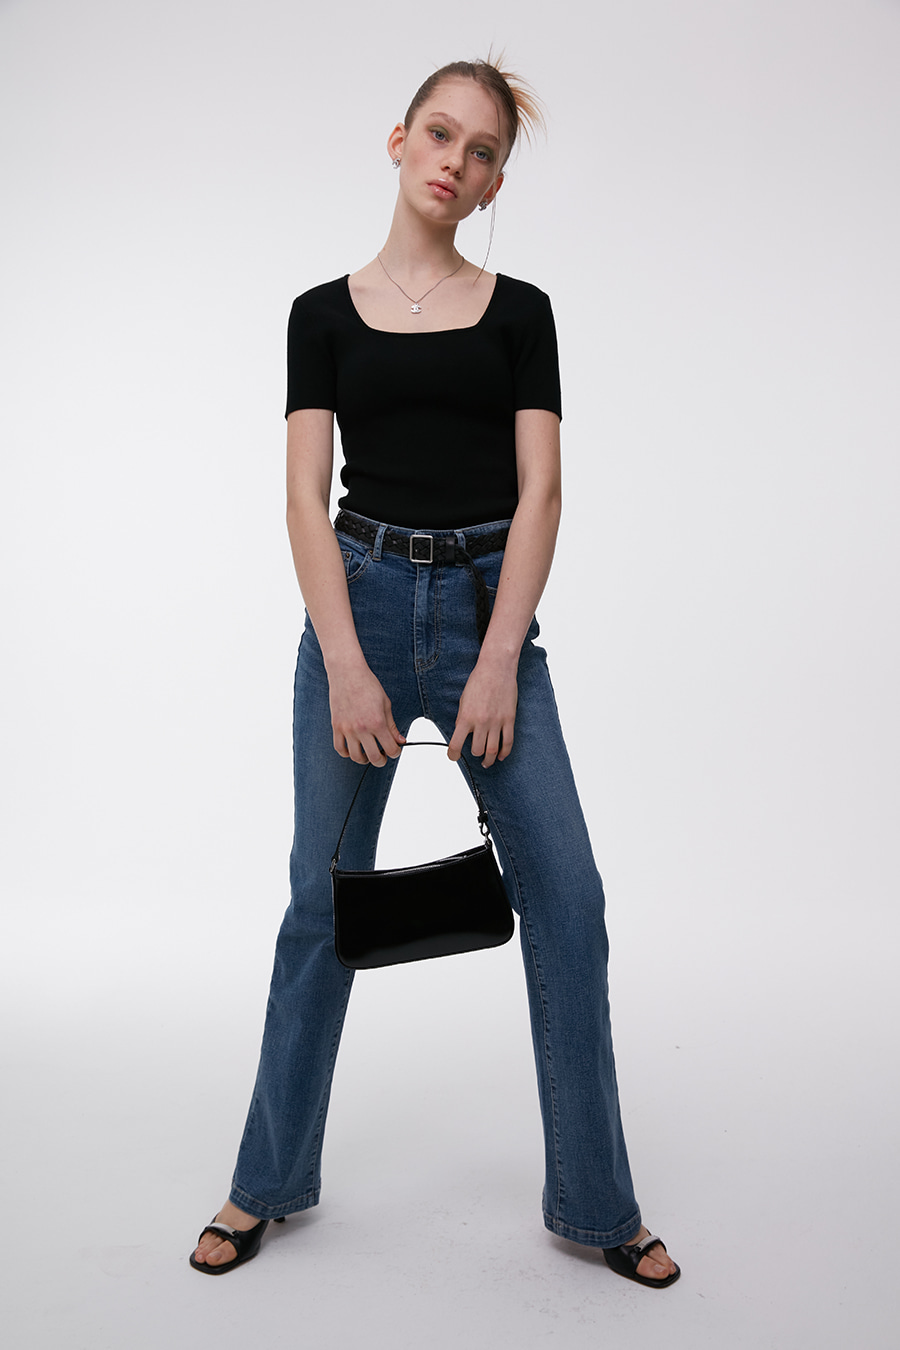 2nd) Perfect Jeans(flare fit)